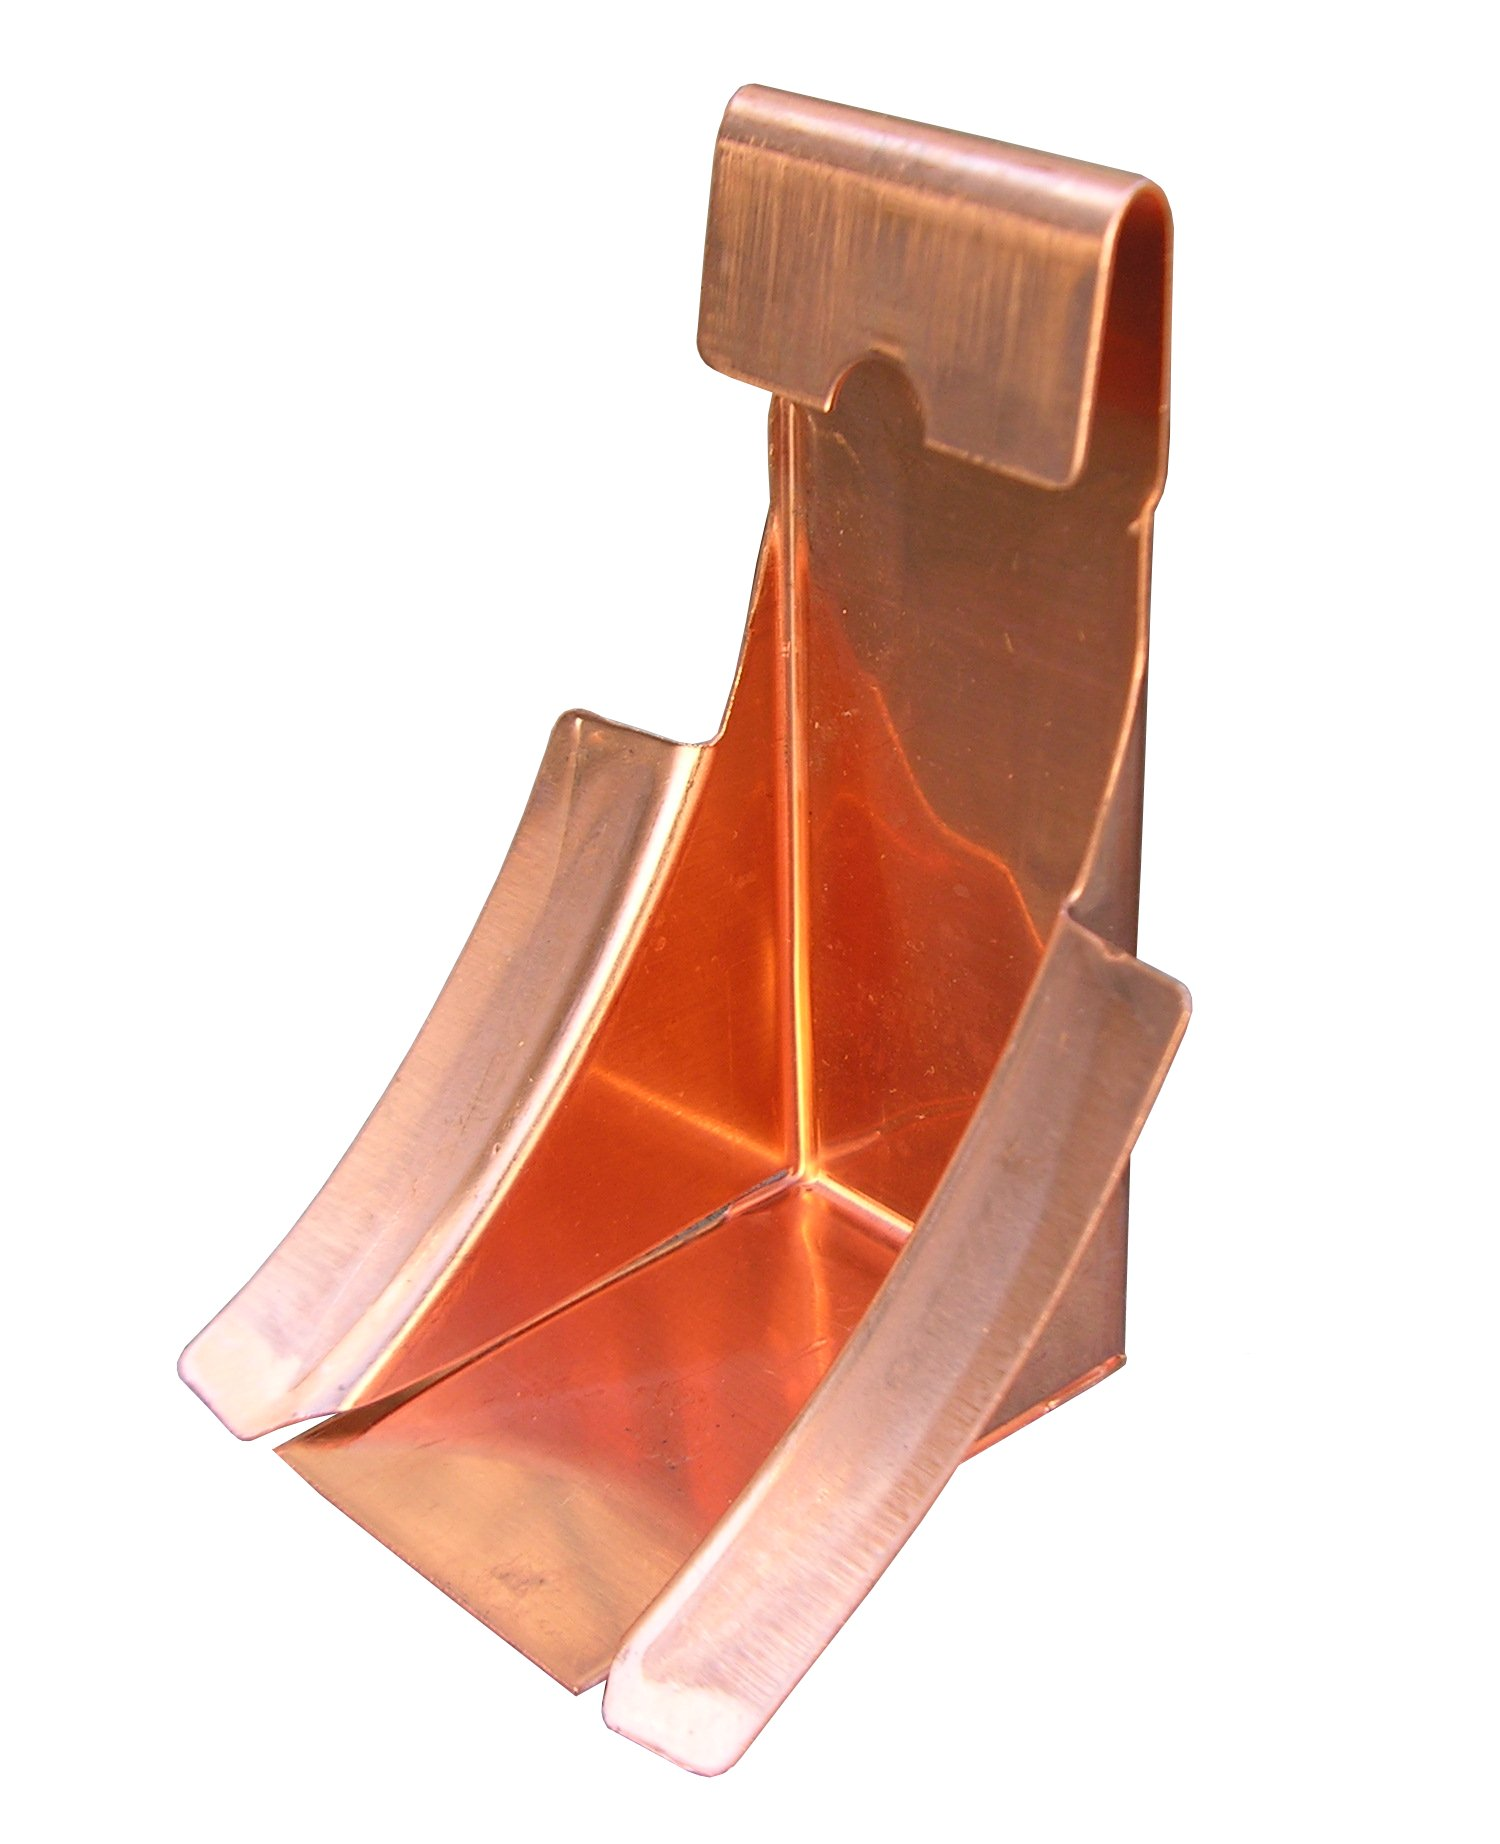 The Half Round Gutter Wedge Eliminates The Need For A Roof